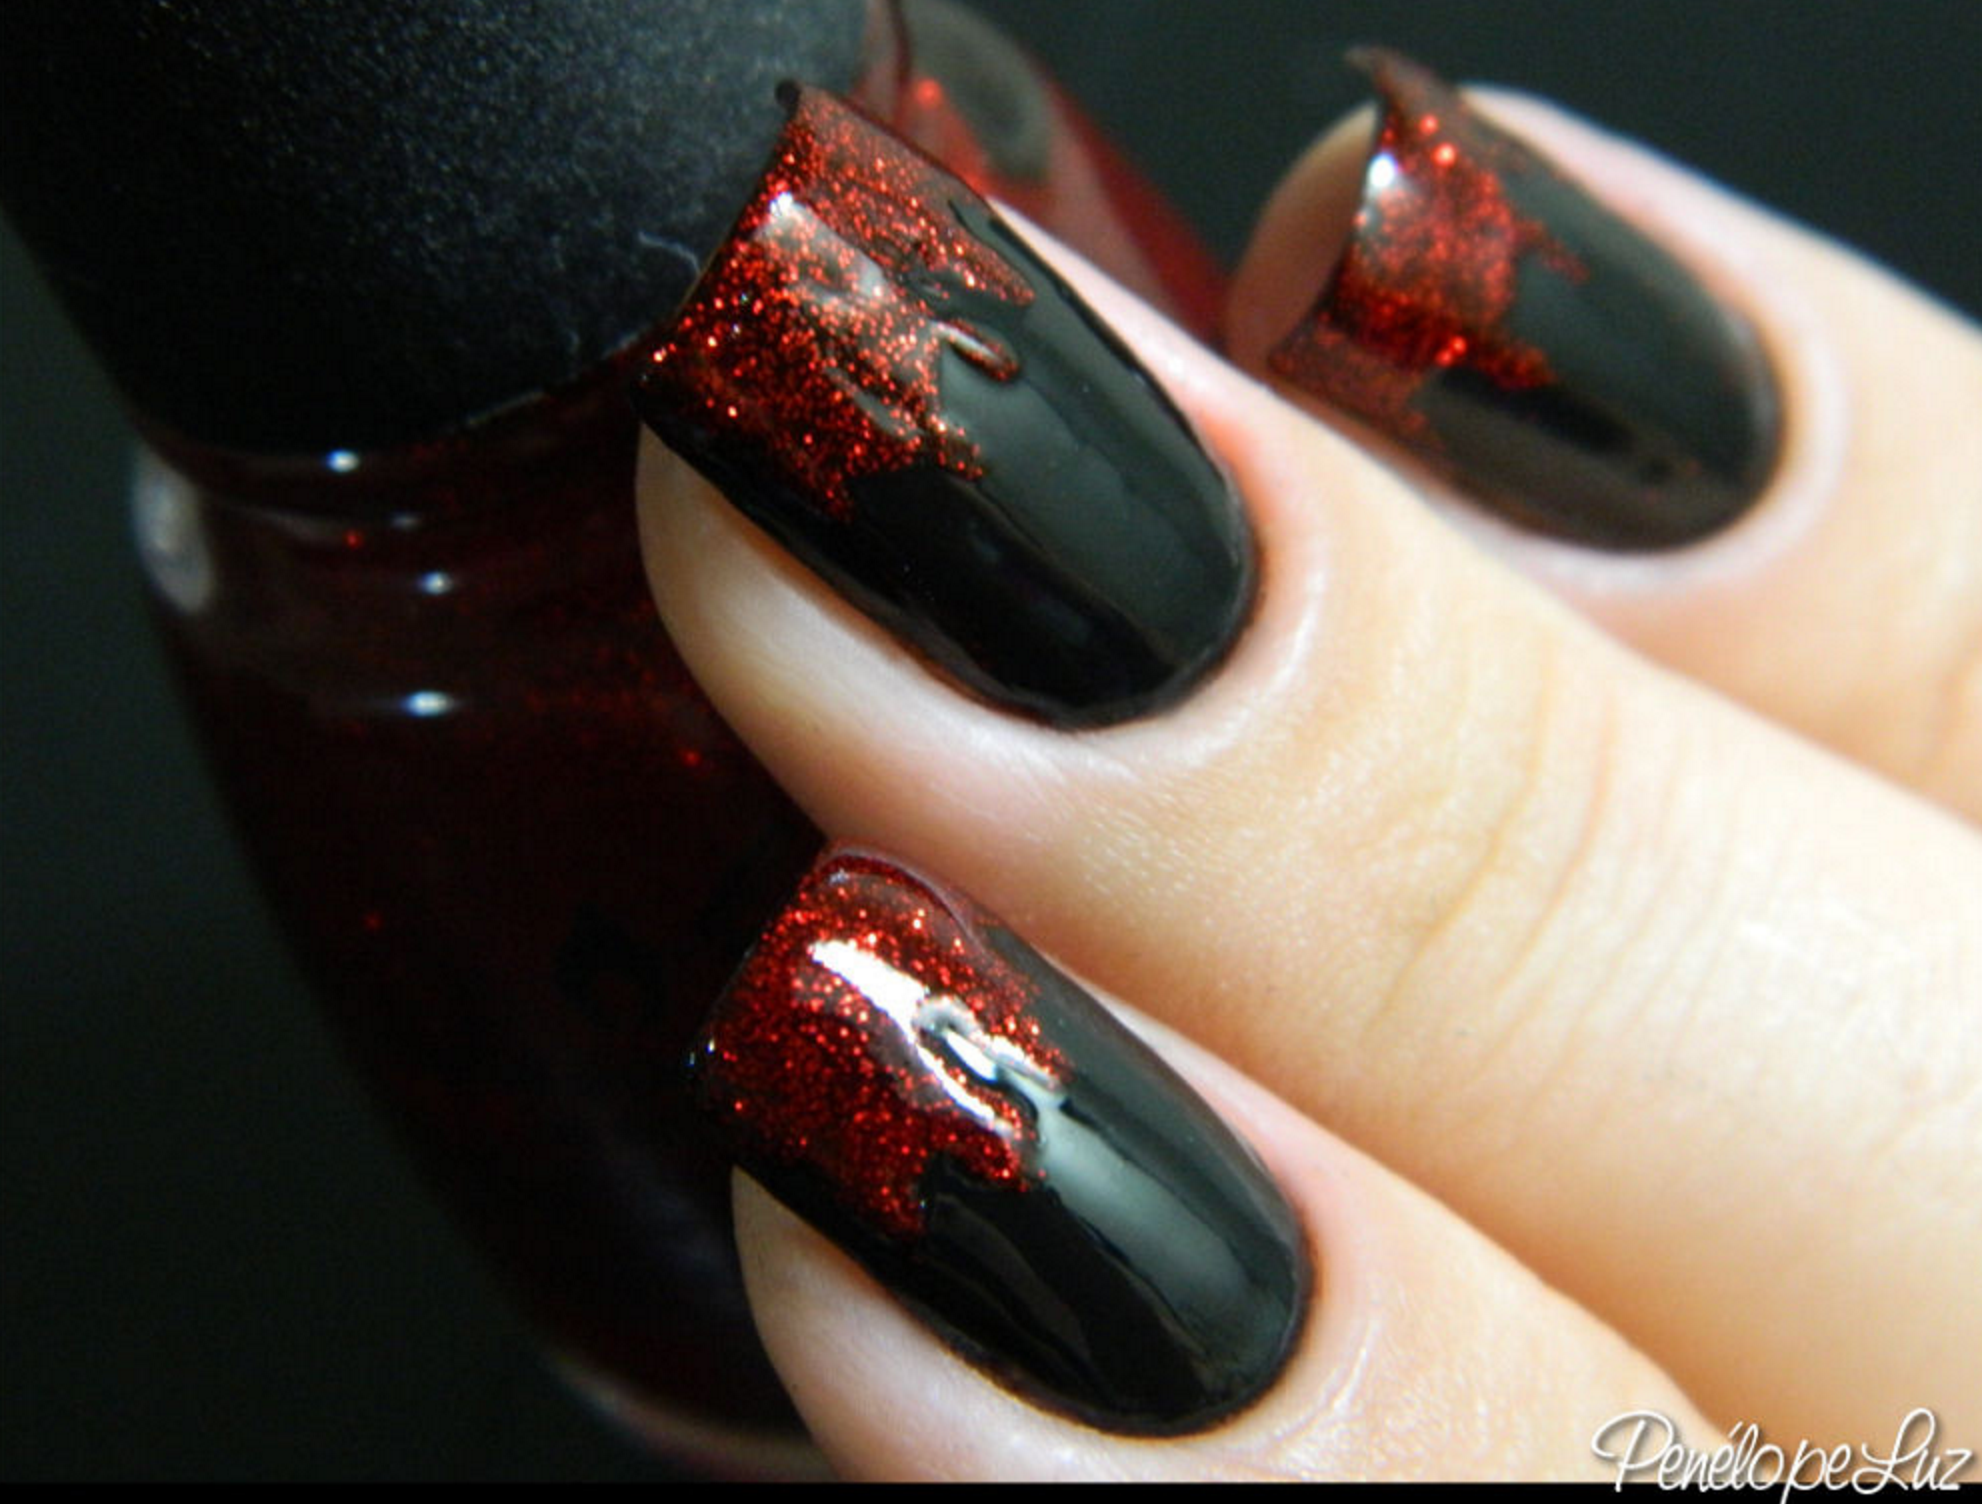 Dripping blood halloween manicure